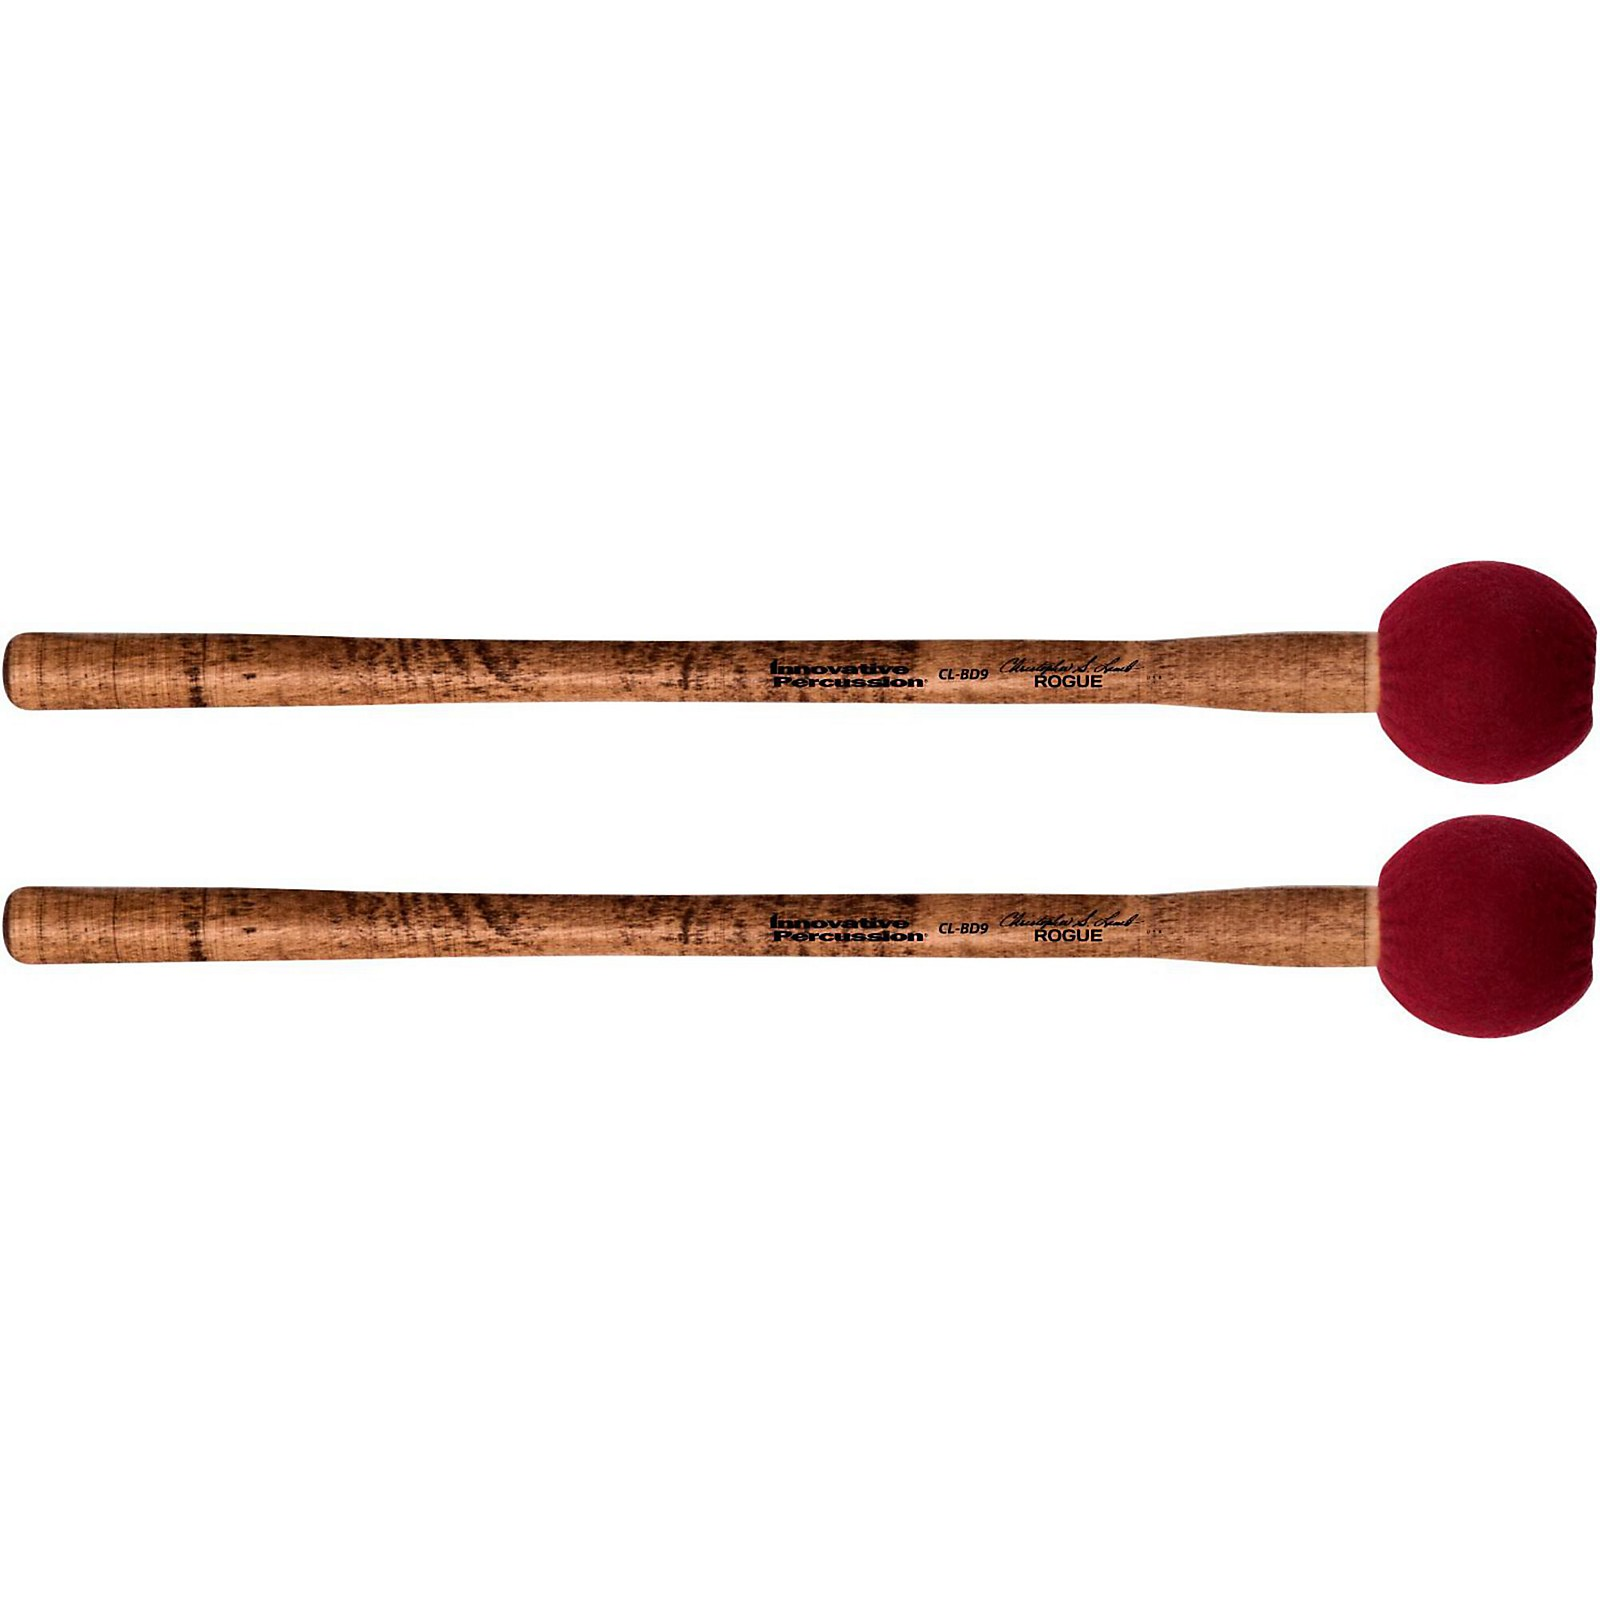 Innovative Percussion Concert Bass Drum Mallet – Rogue (pair)